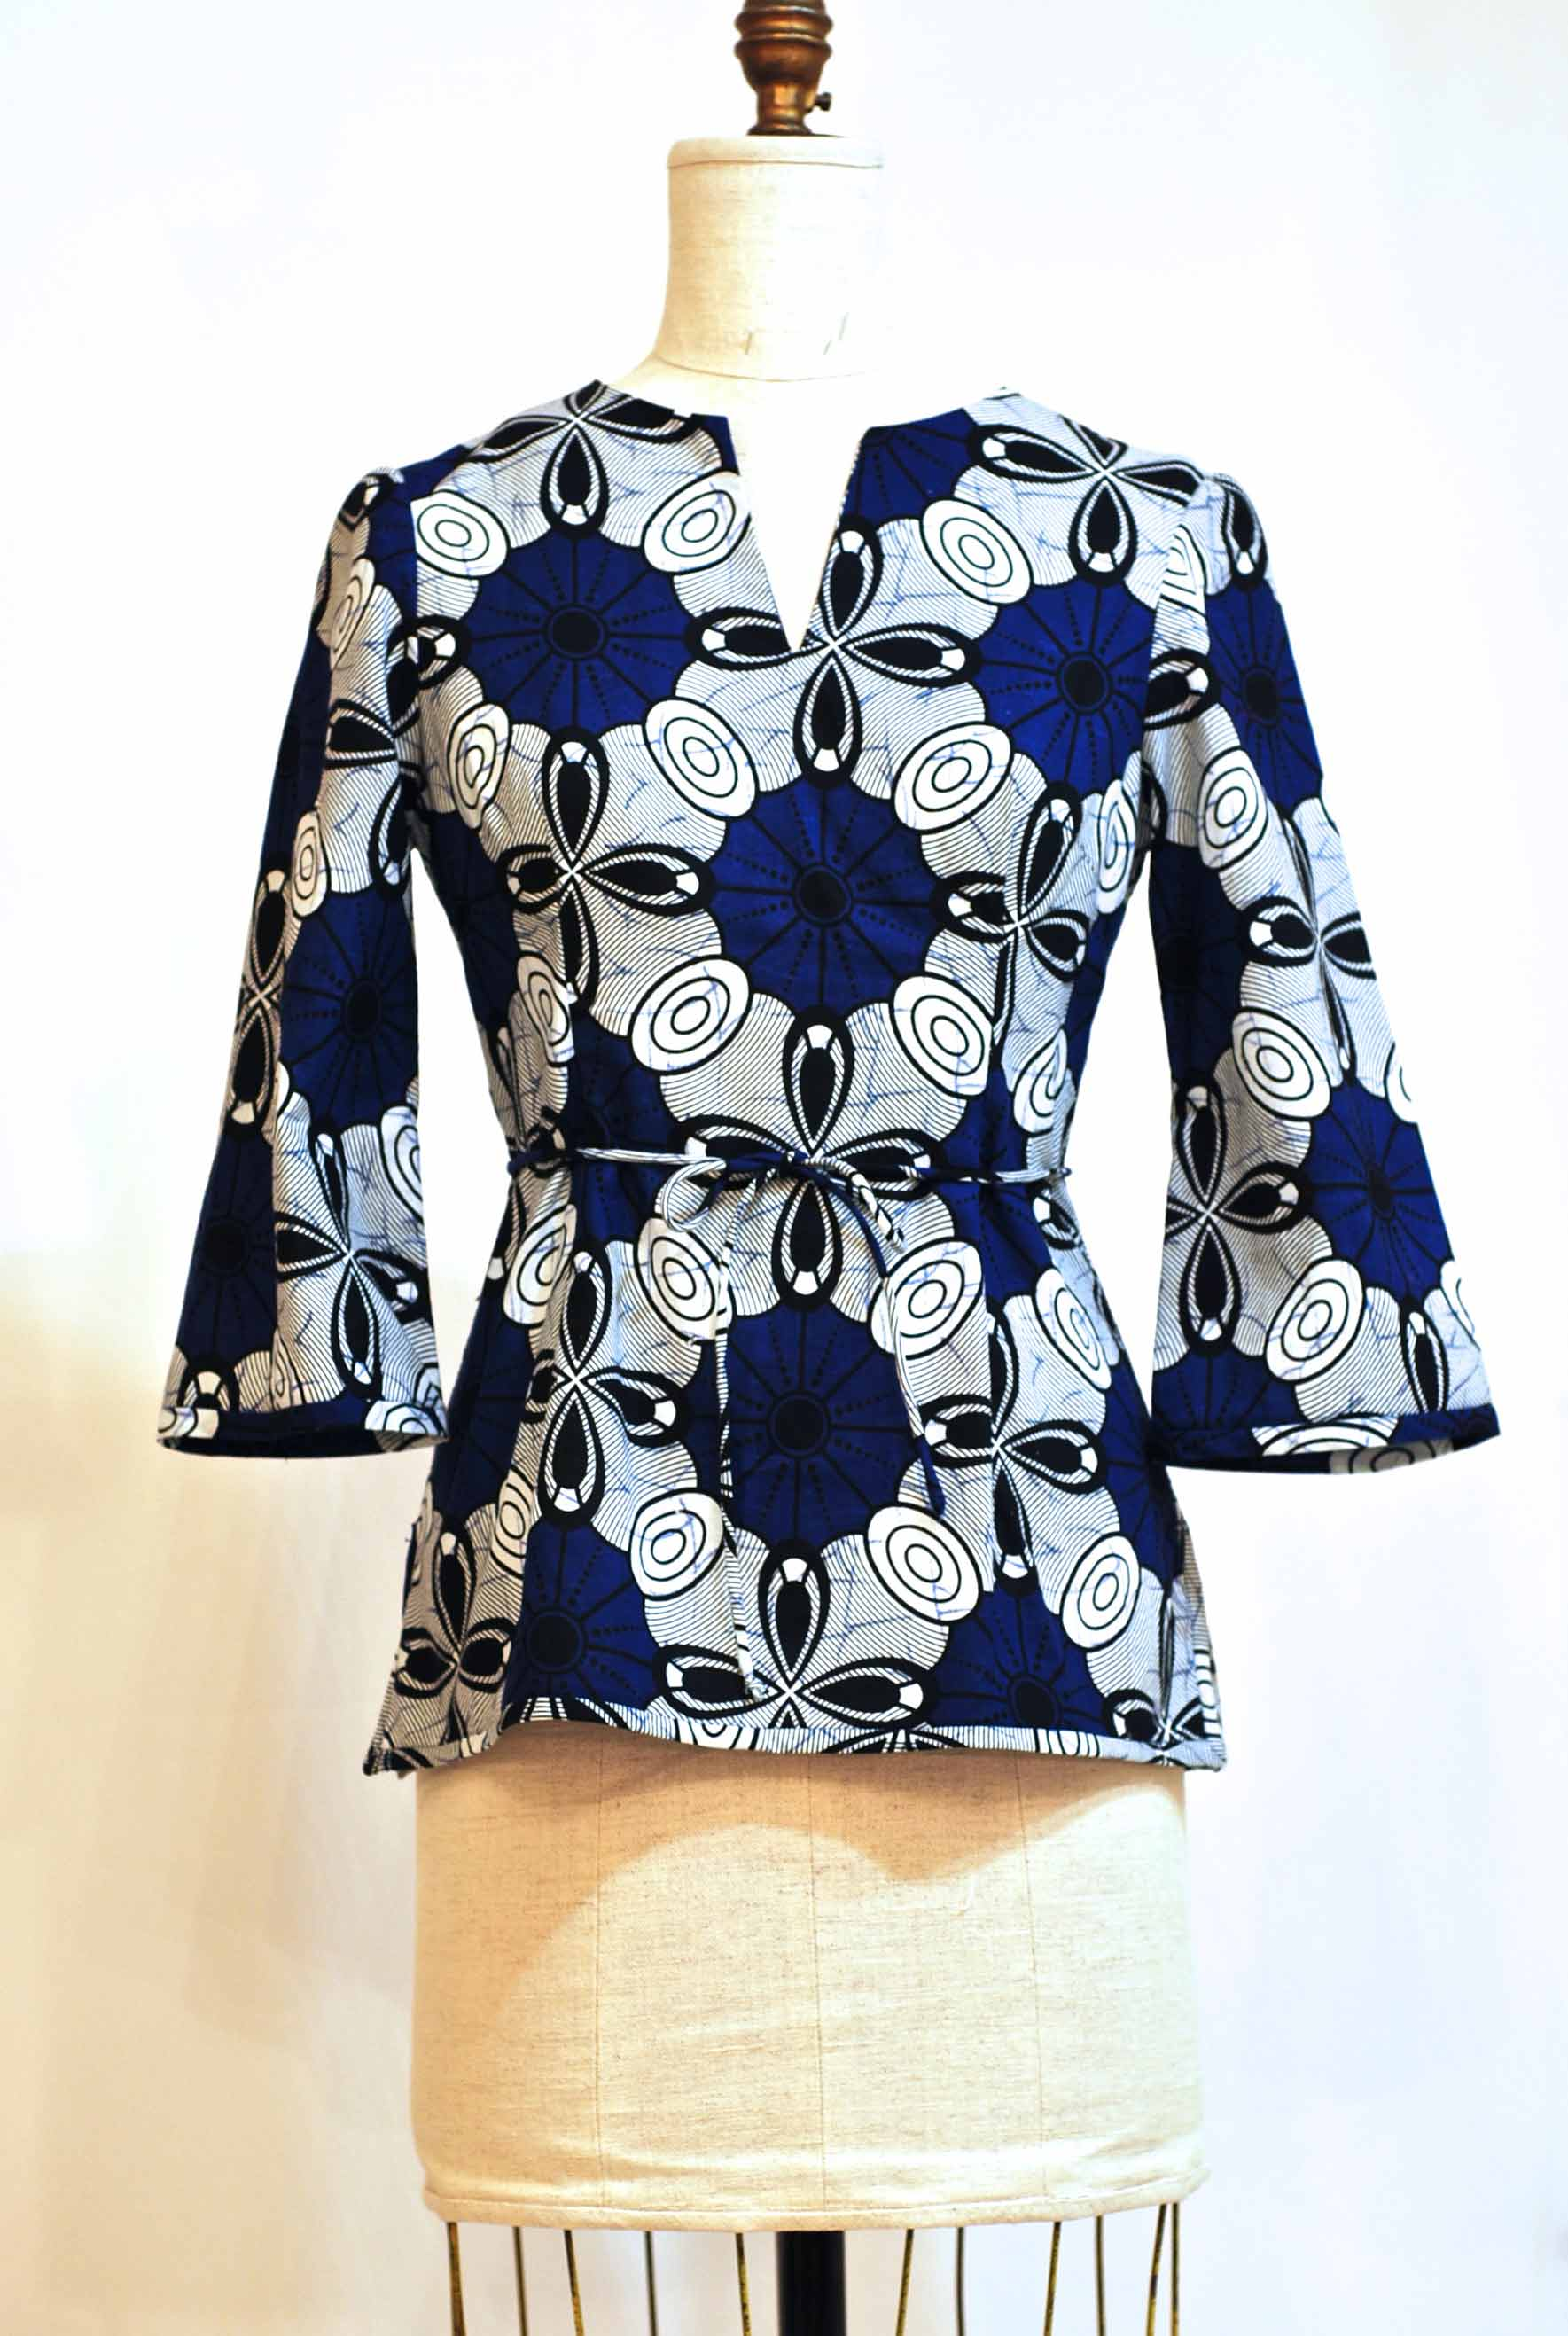 Blue / white Tunic - sz 6 - Bust 34 waist 28 - was $285. now $175.  100% Cotton - Machine Washable - sold